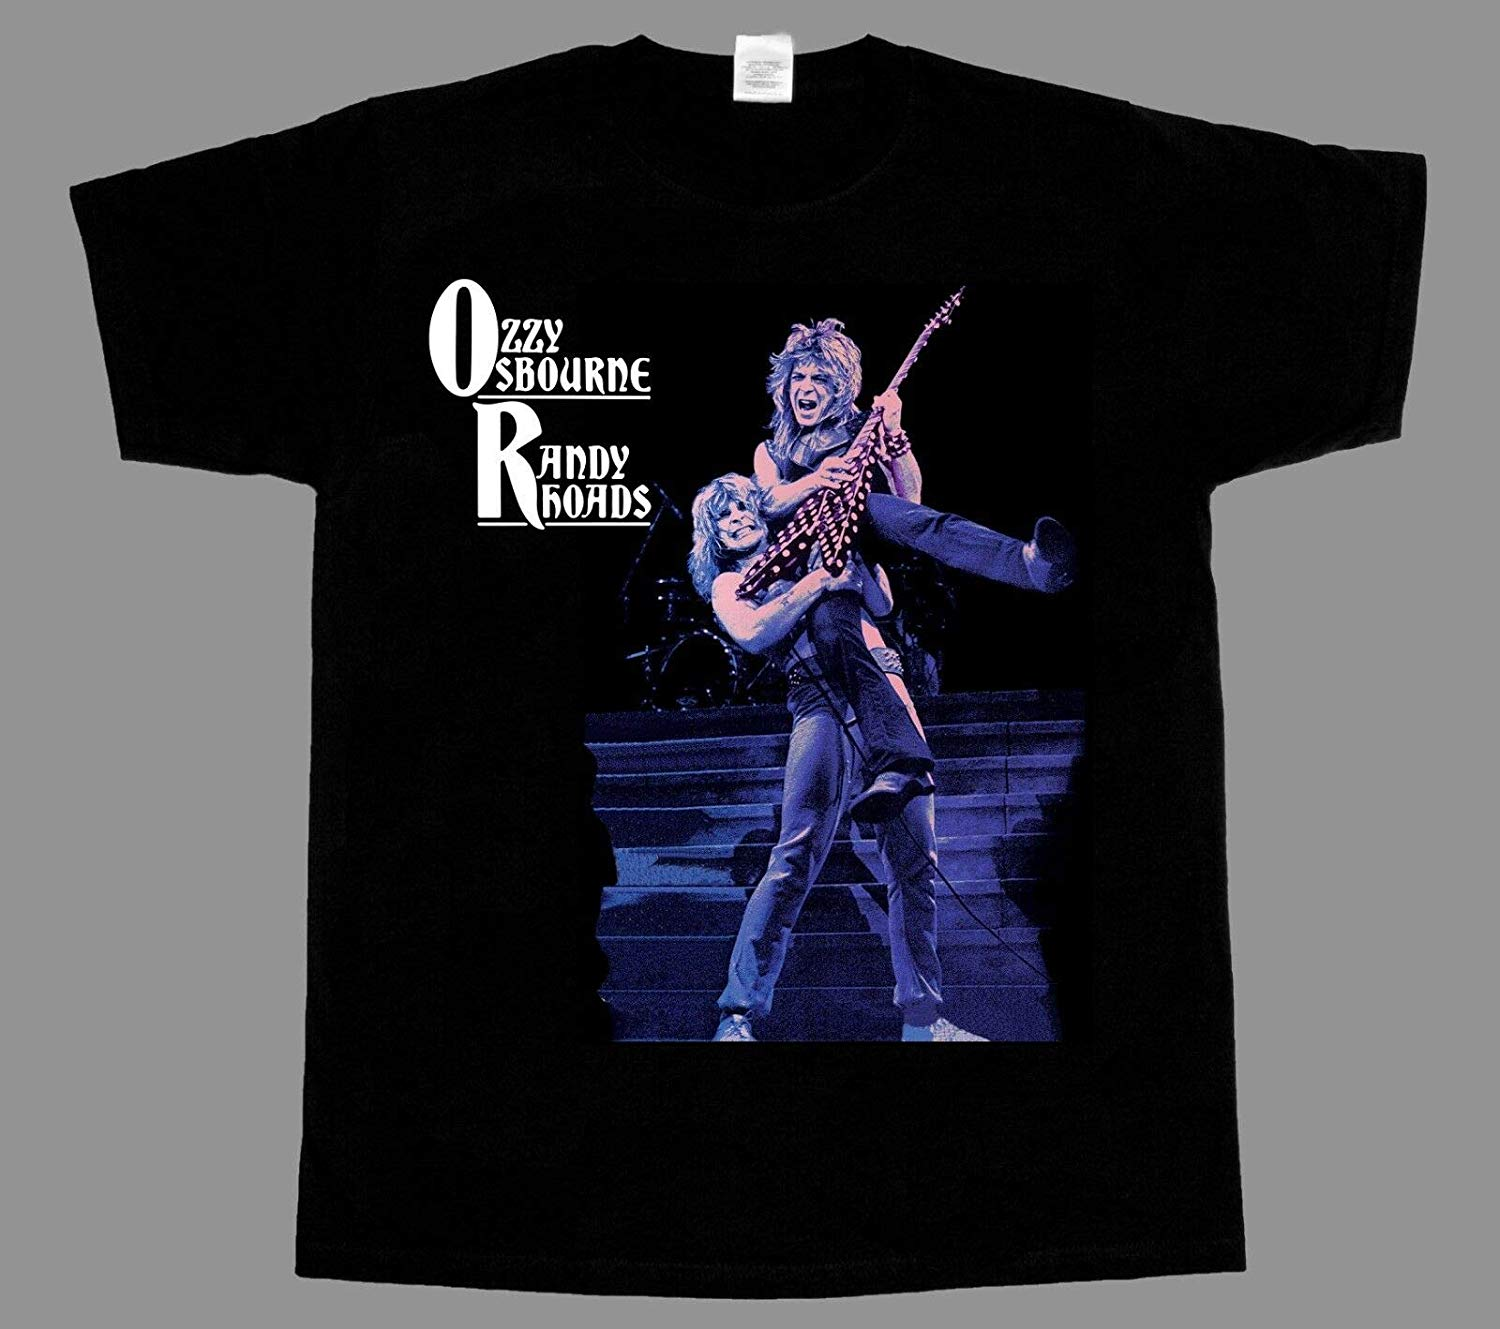 OZZY OSBOURNE <font><b>RANDY</b></font> <font><b>RHOADS</b></font> BLACK t shirt Gift T-Shirt for Men Woman 2019 Summer T-Shirts For Men image